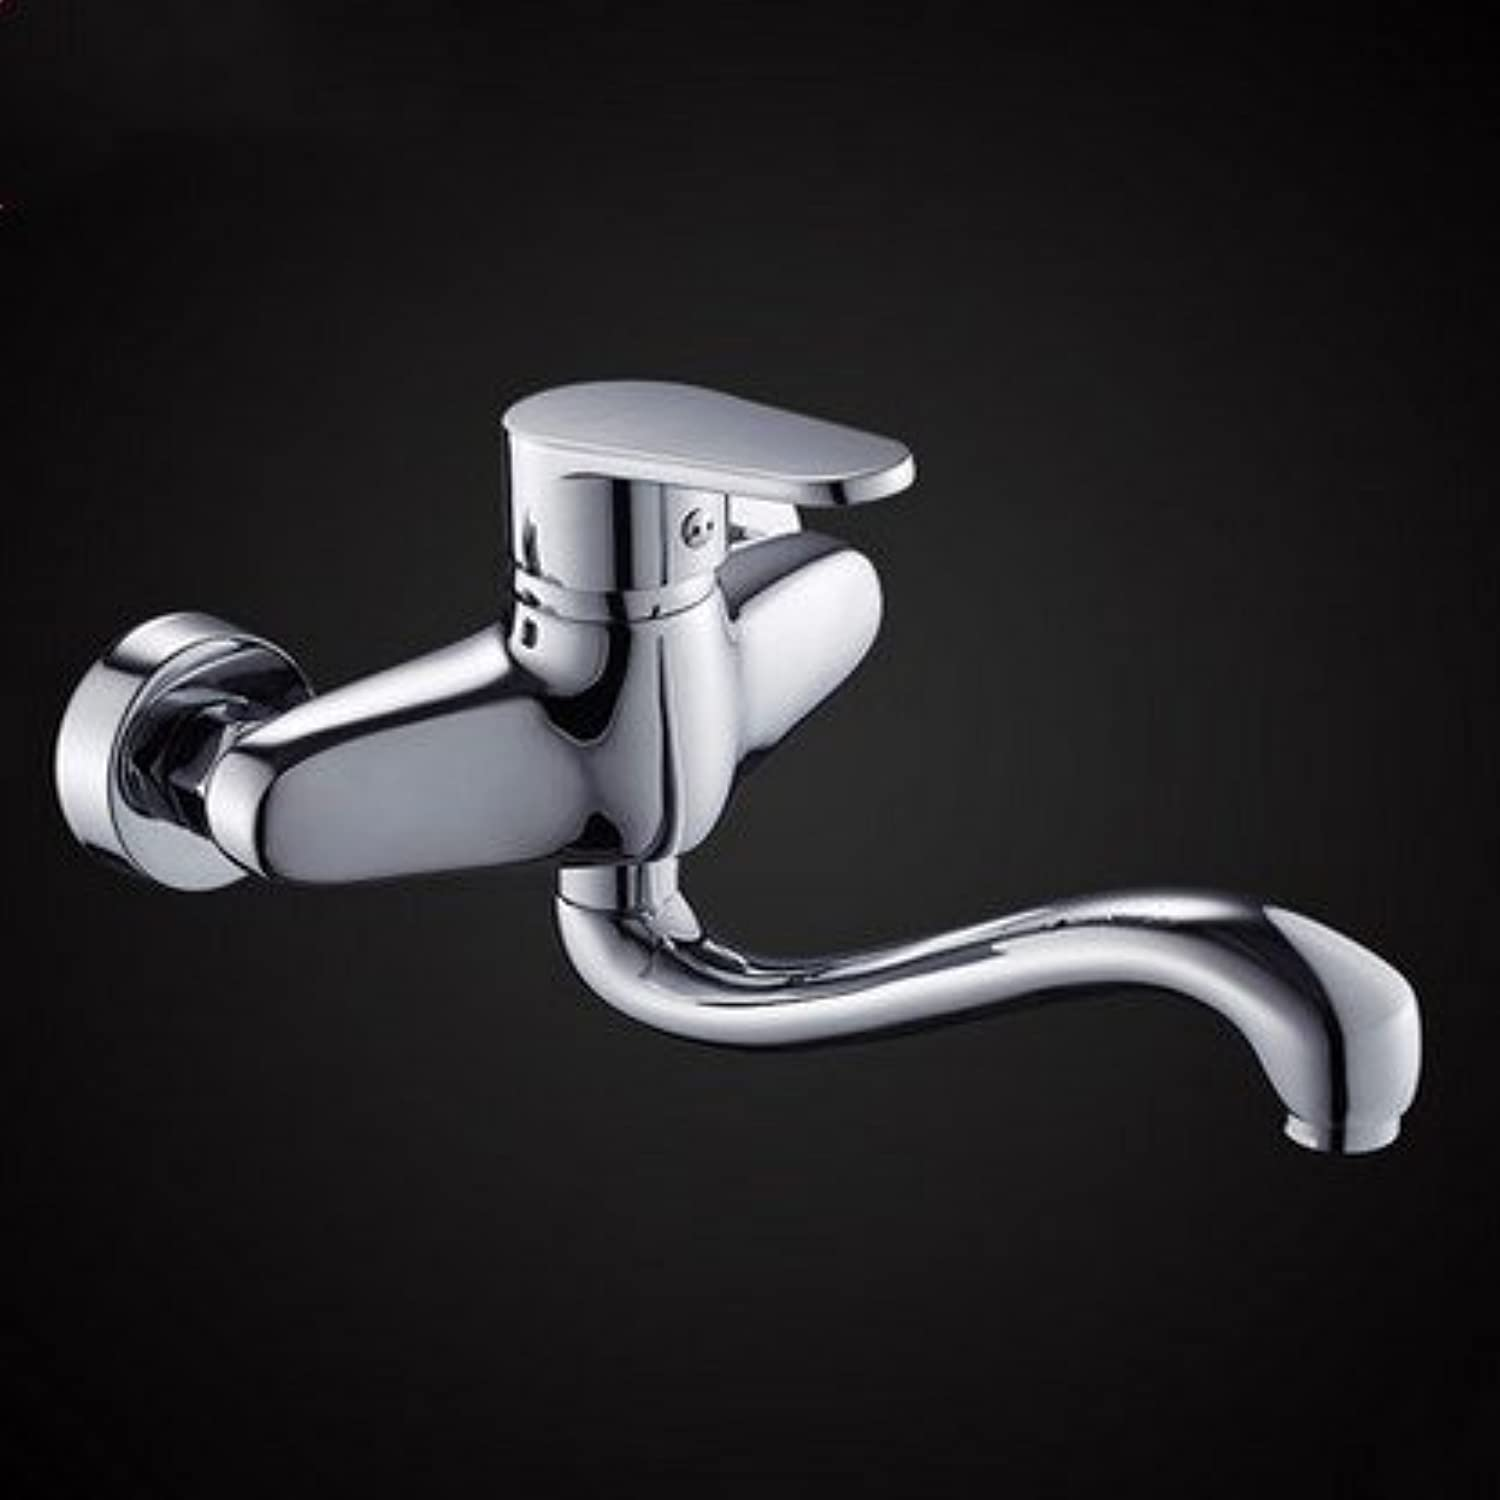 Diongrdk All Copper Hot and Cold Water Faucet Into Wall Faucet Kitchen Faucet Laundry Basin Pots Basin Flaps Can Be redated.